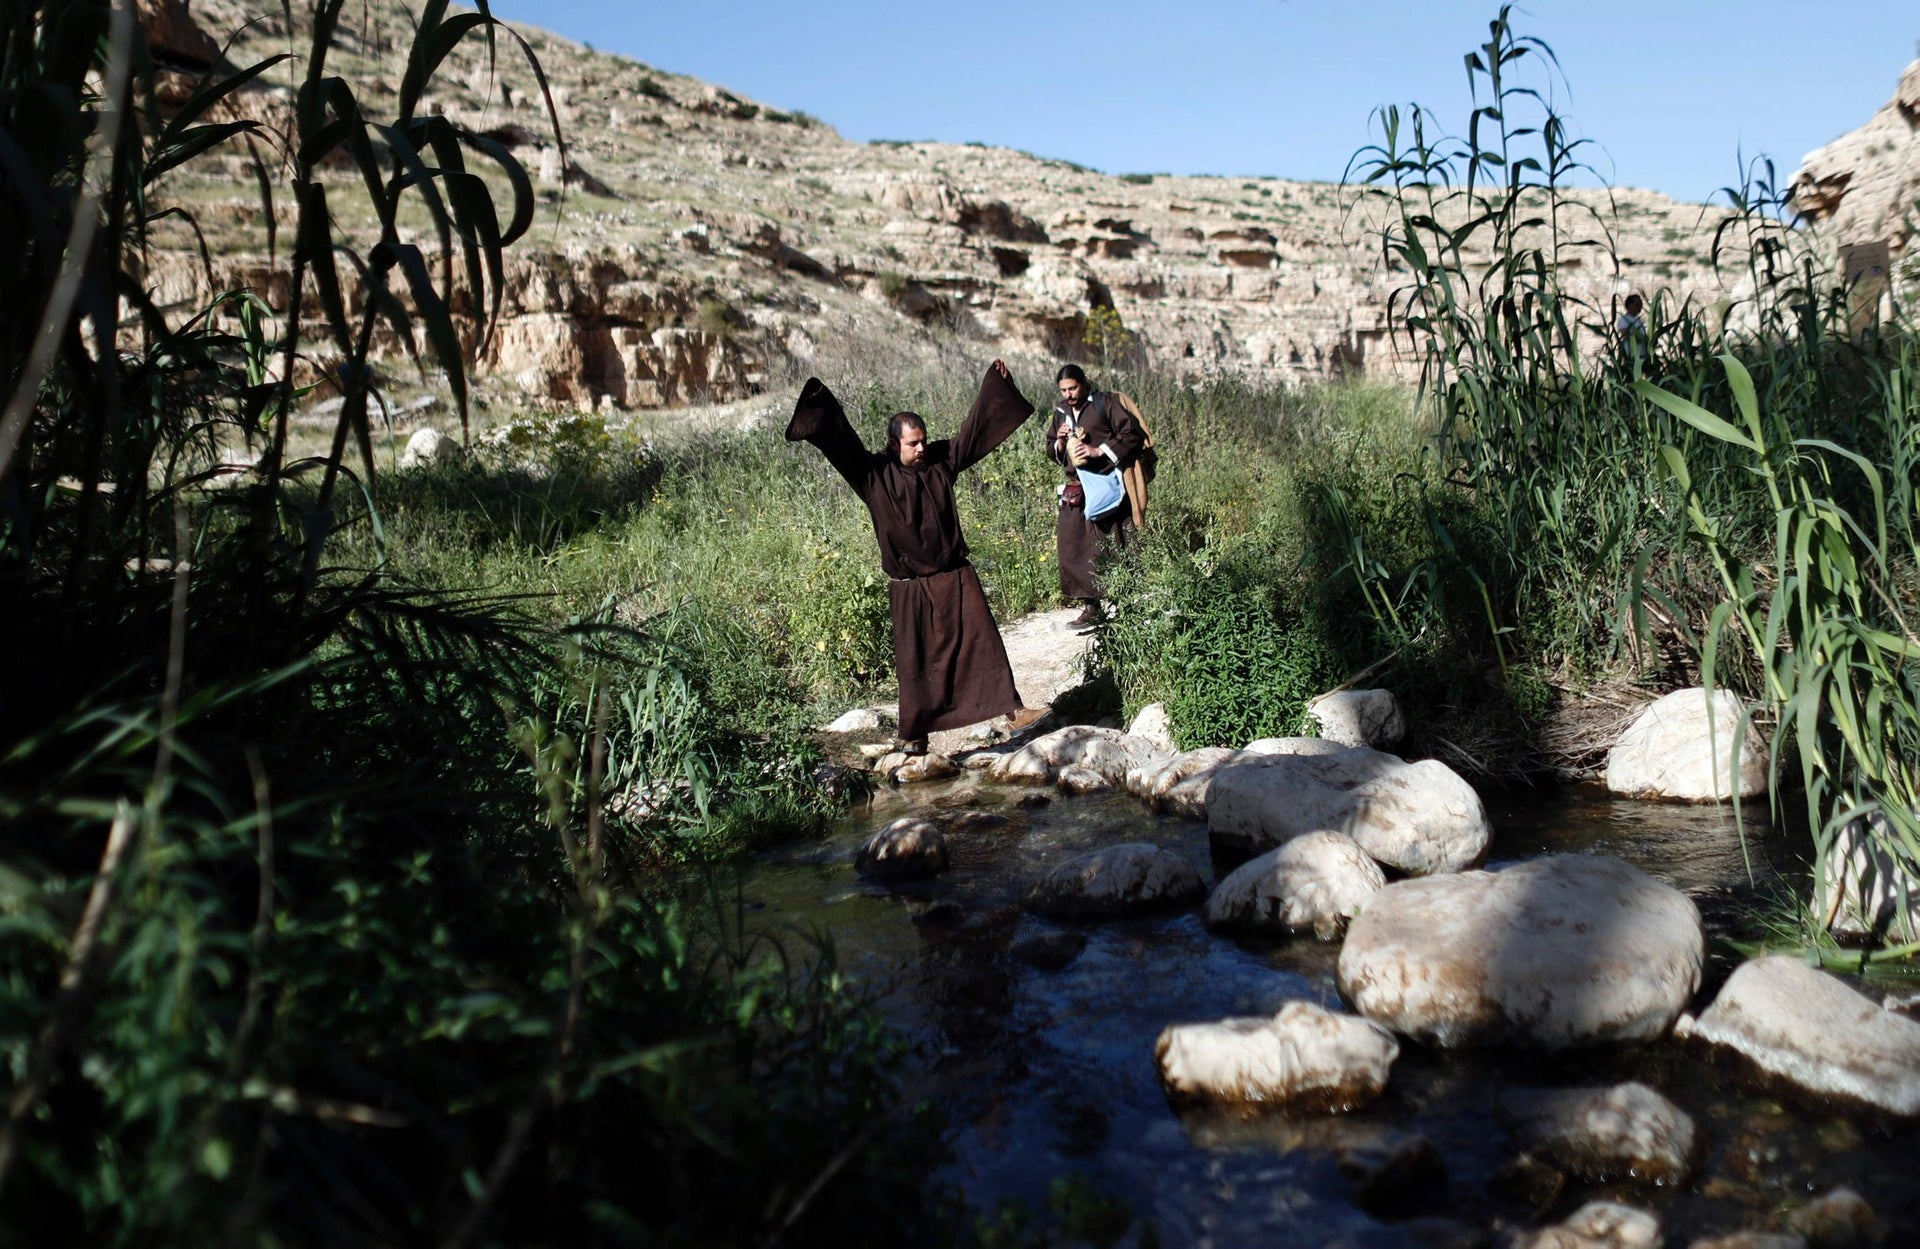 Israeli enthusiasts walk in the Jordan valley near Jericho as they take part in a three day walk on March 11, 2016 between the West Bank city of Jericho and Jerusalem, as part of an event to re-enact the Curaders' journey.